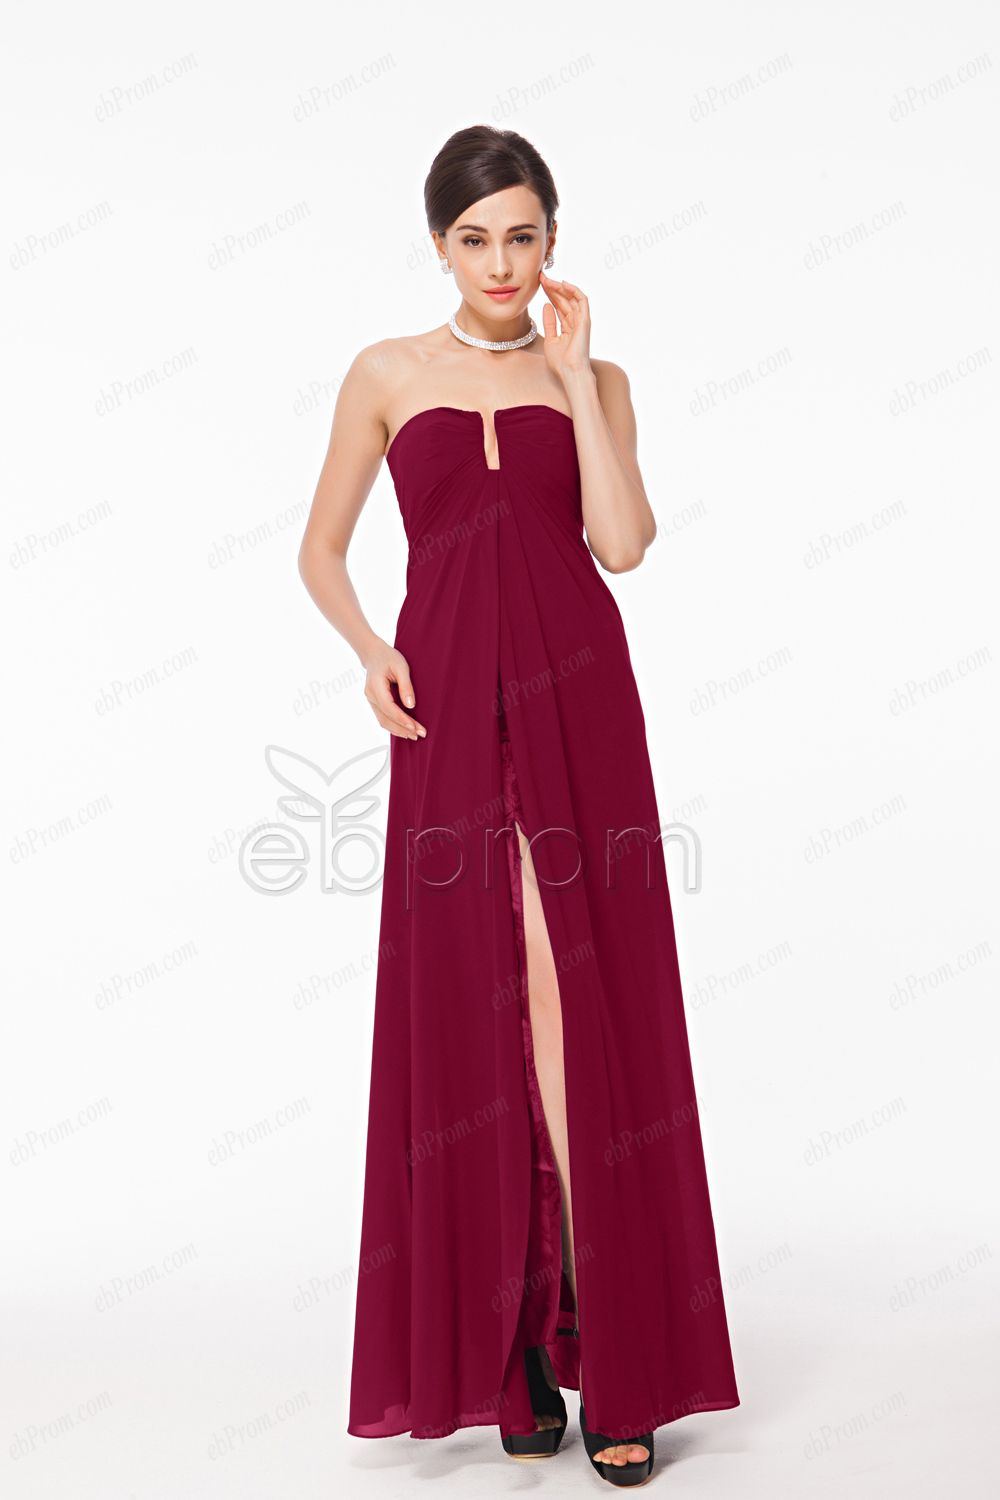 Wedding Burgundy Prom Dress long burgundy prom dresses with slit sexy and 2015 strapless dress